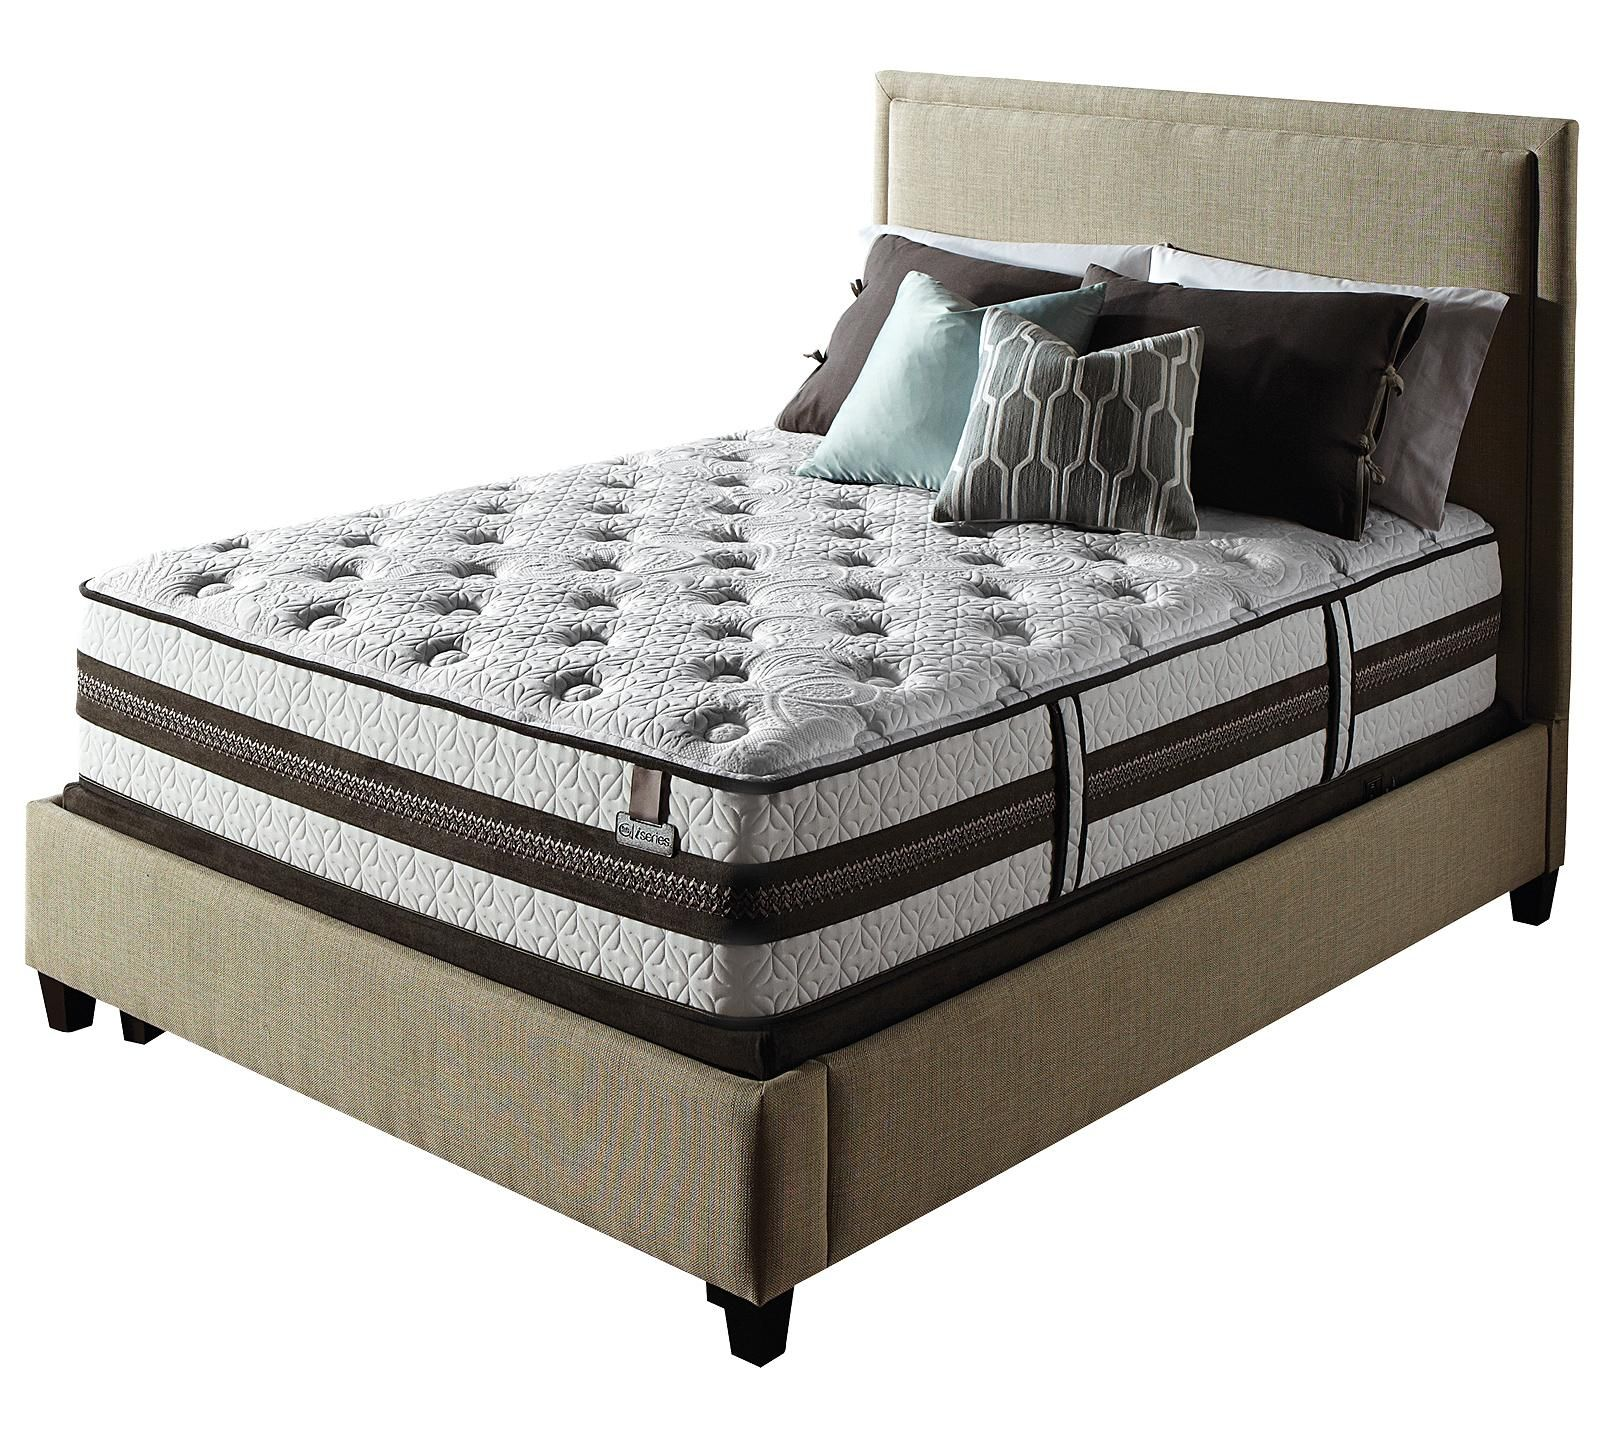 serta iseries profiles cushion firm mattress the cushion firm feel